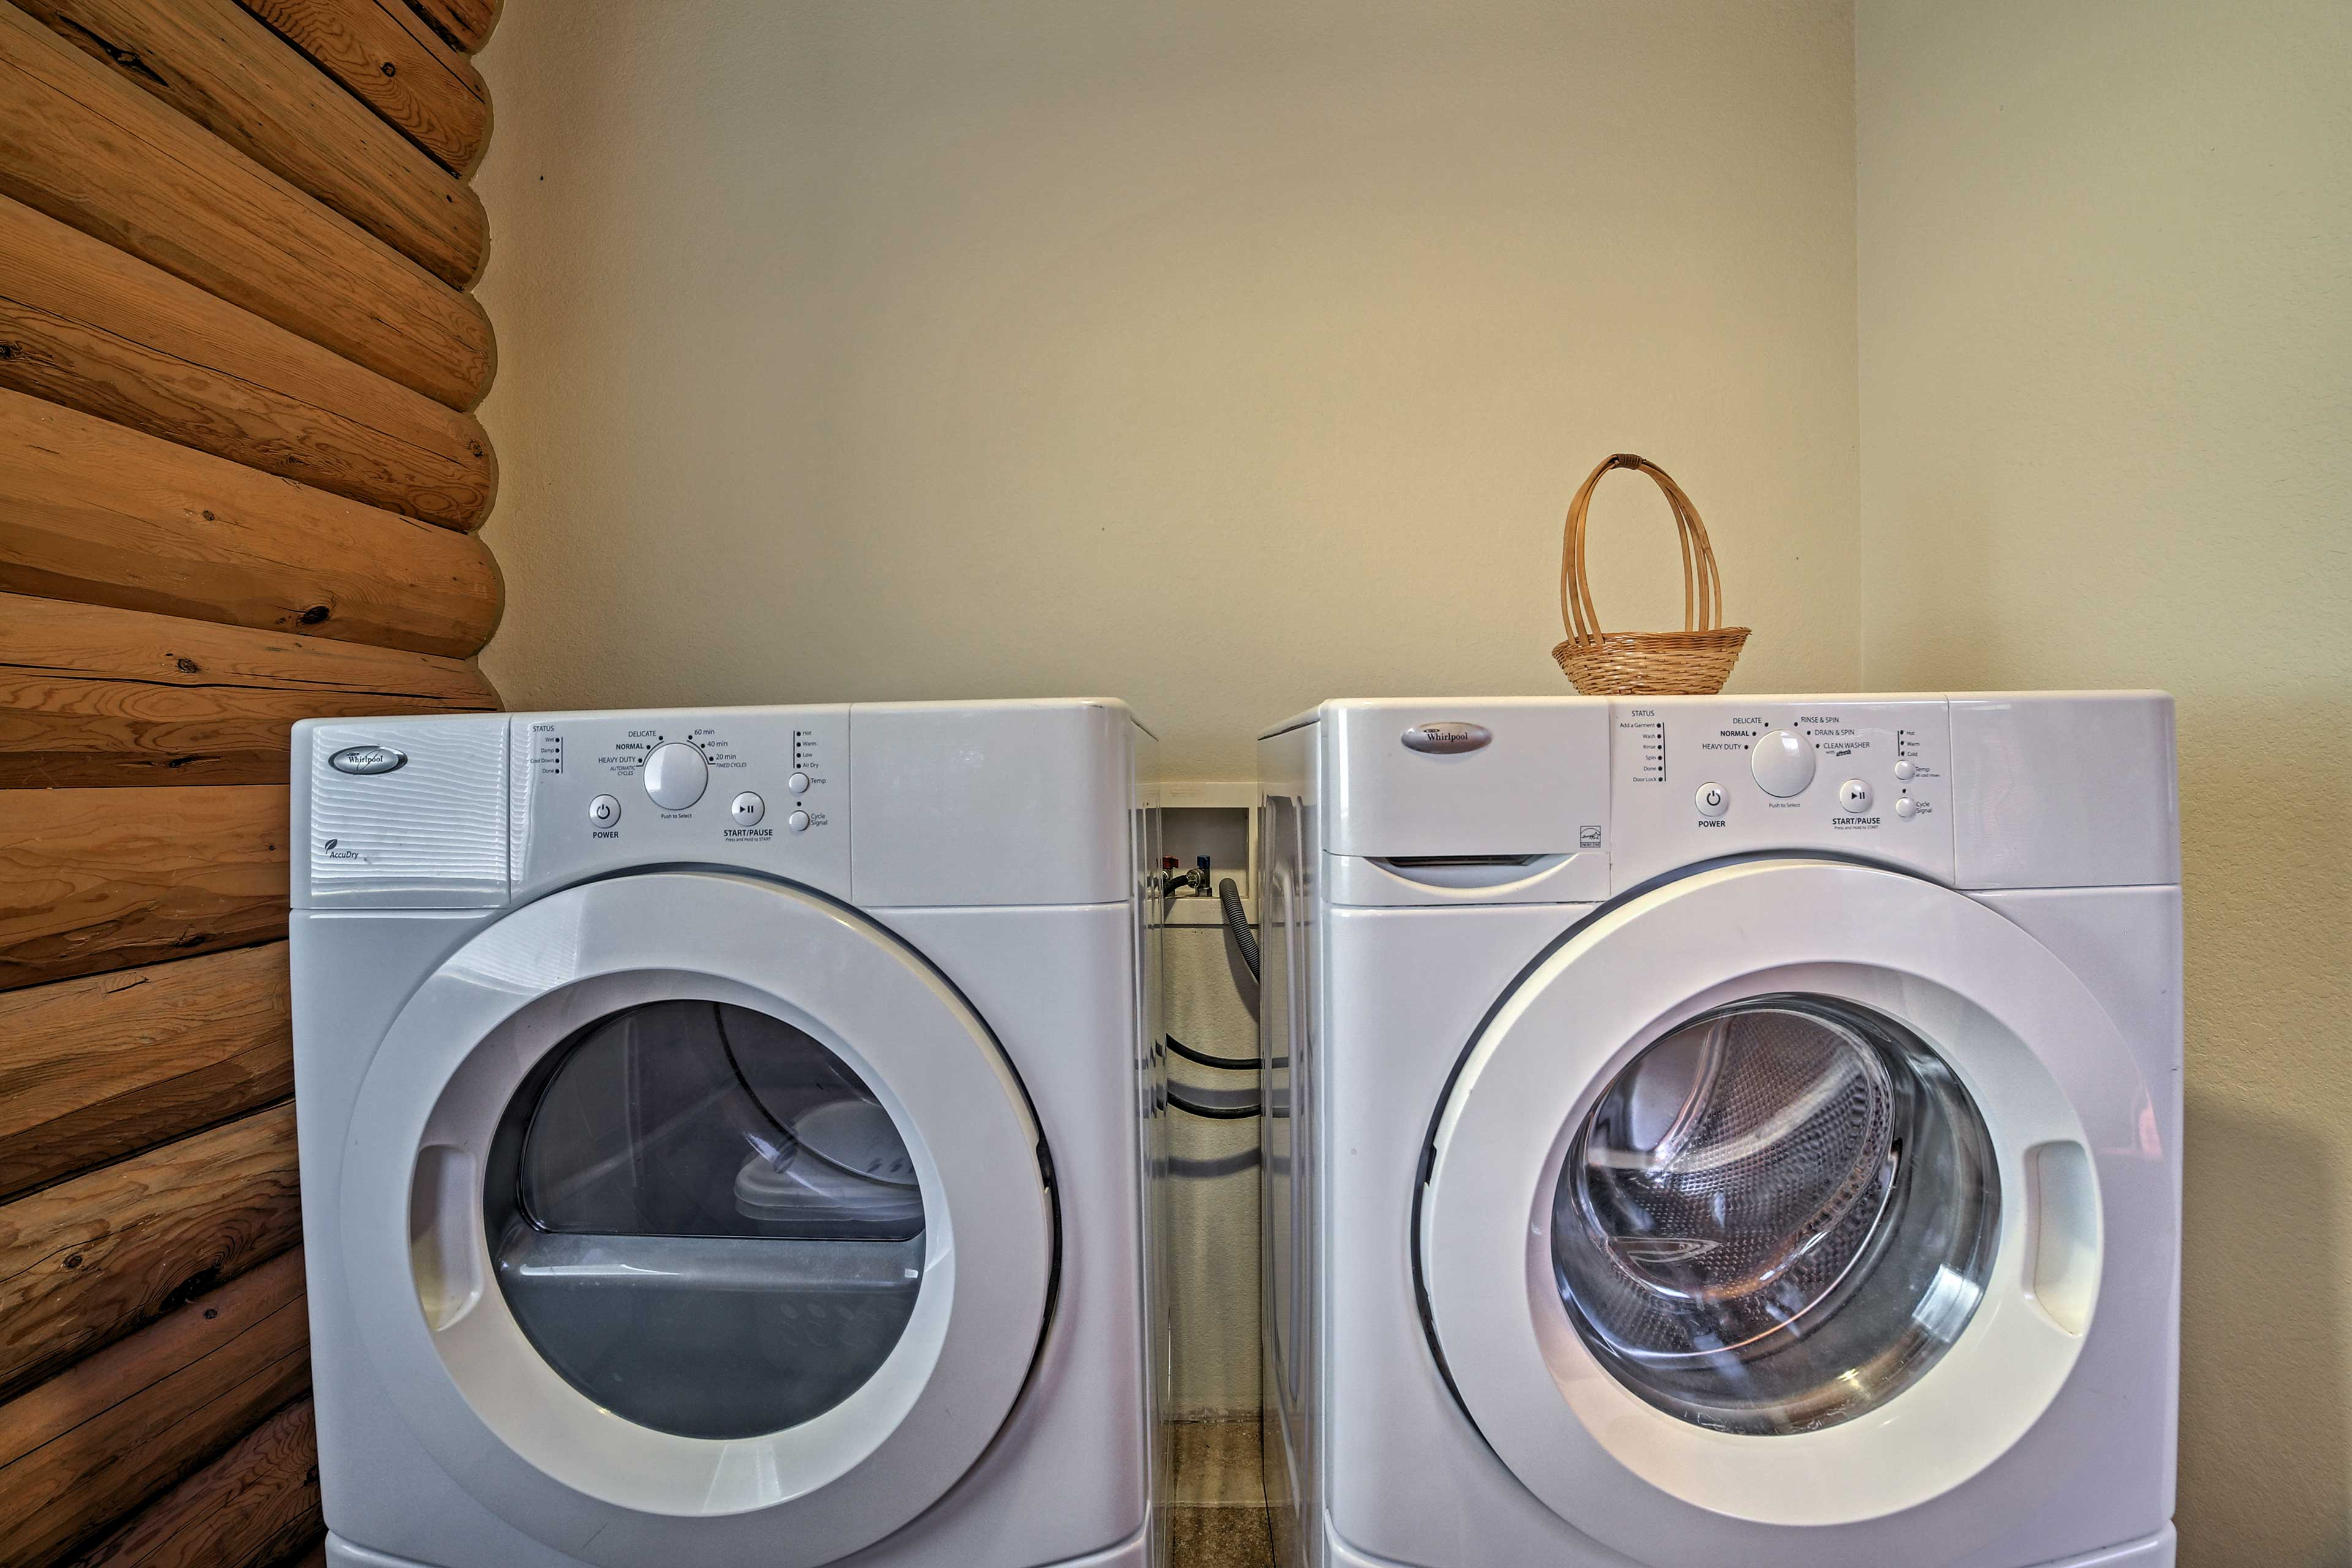 A washer and dryer are included for your added comfort.